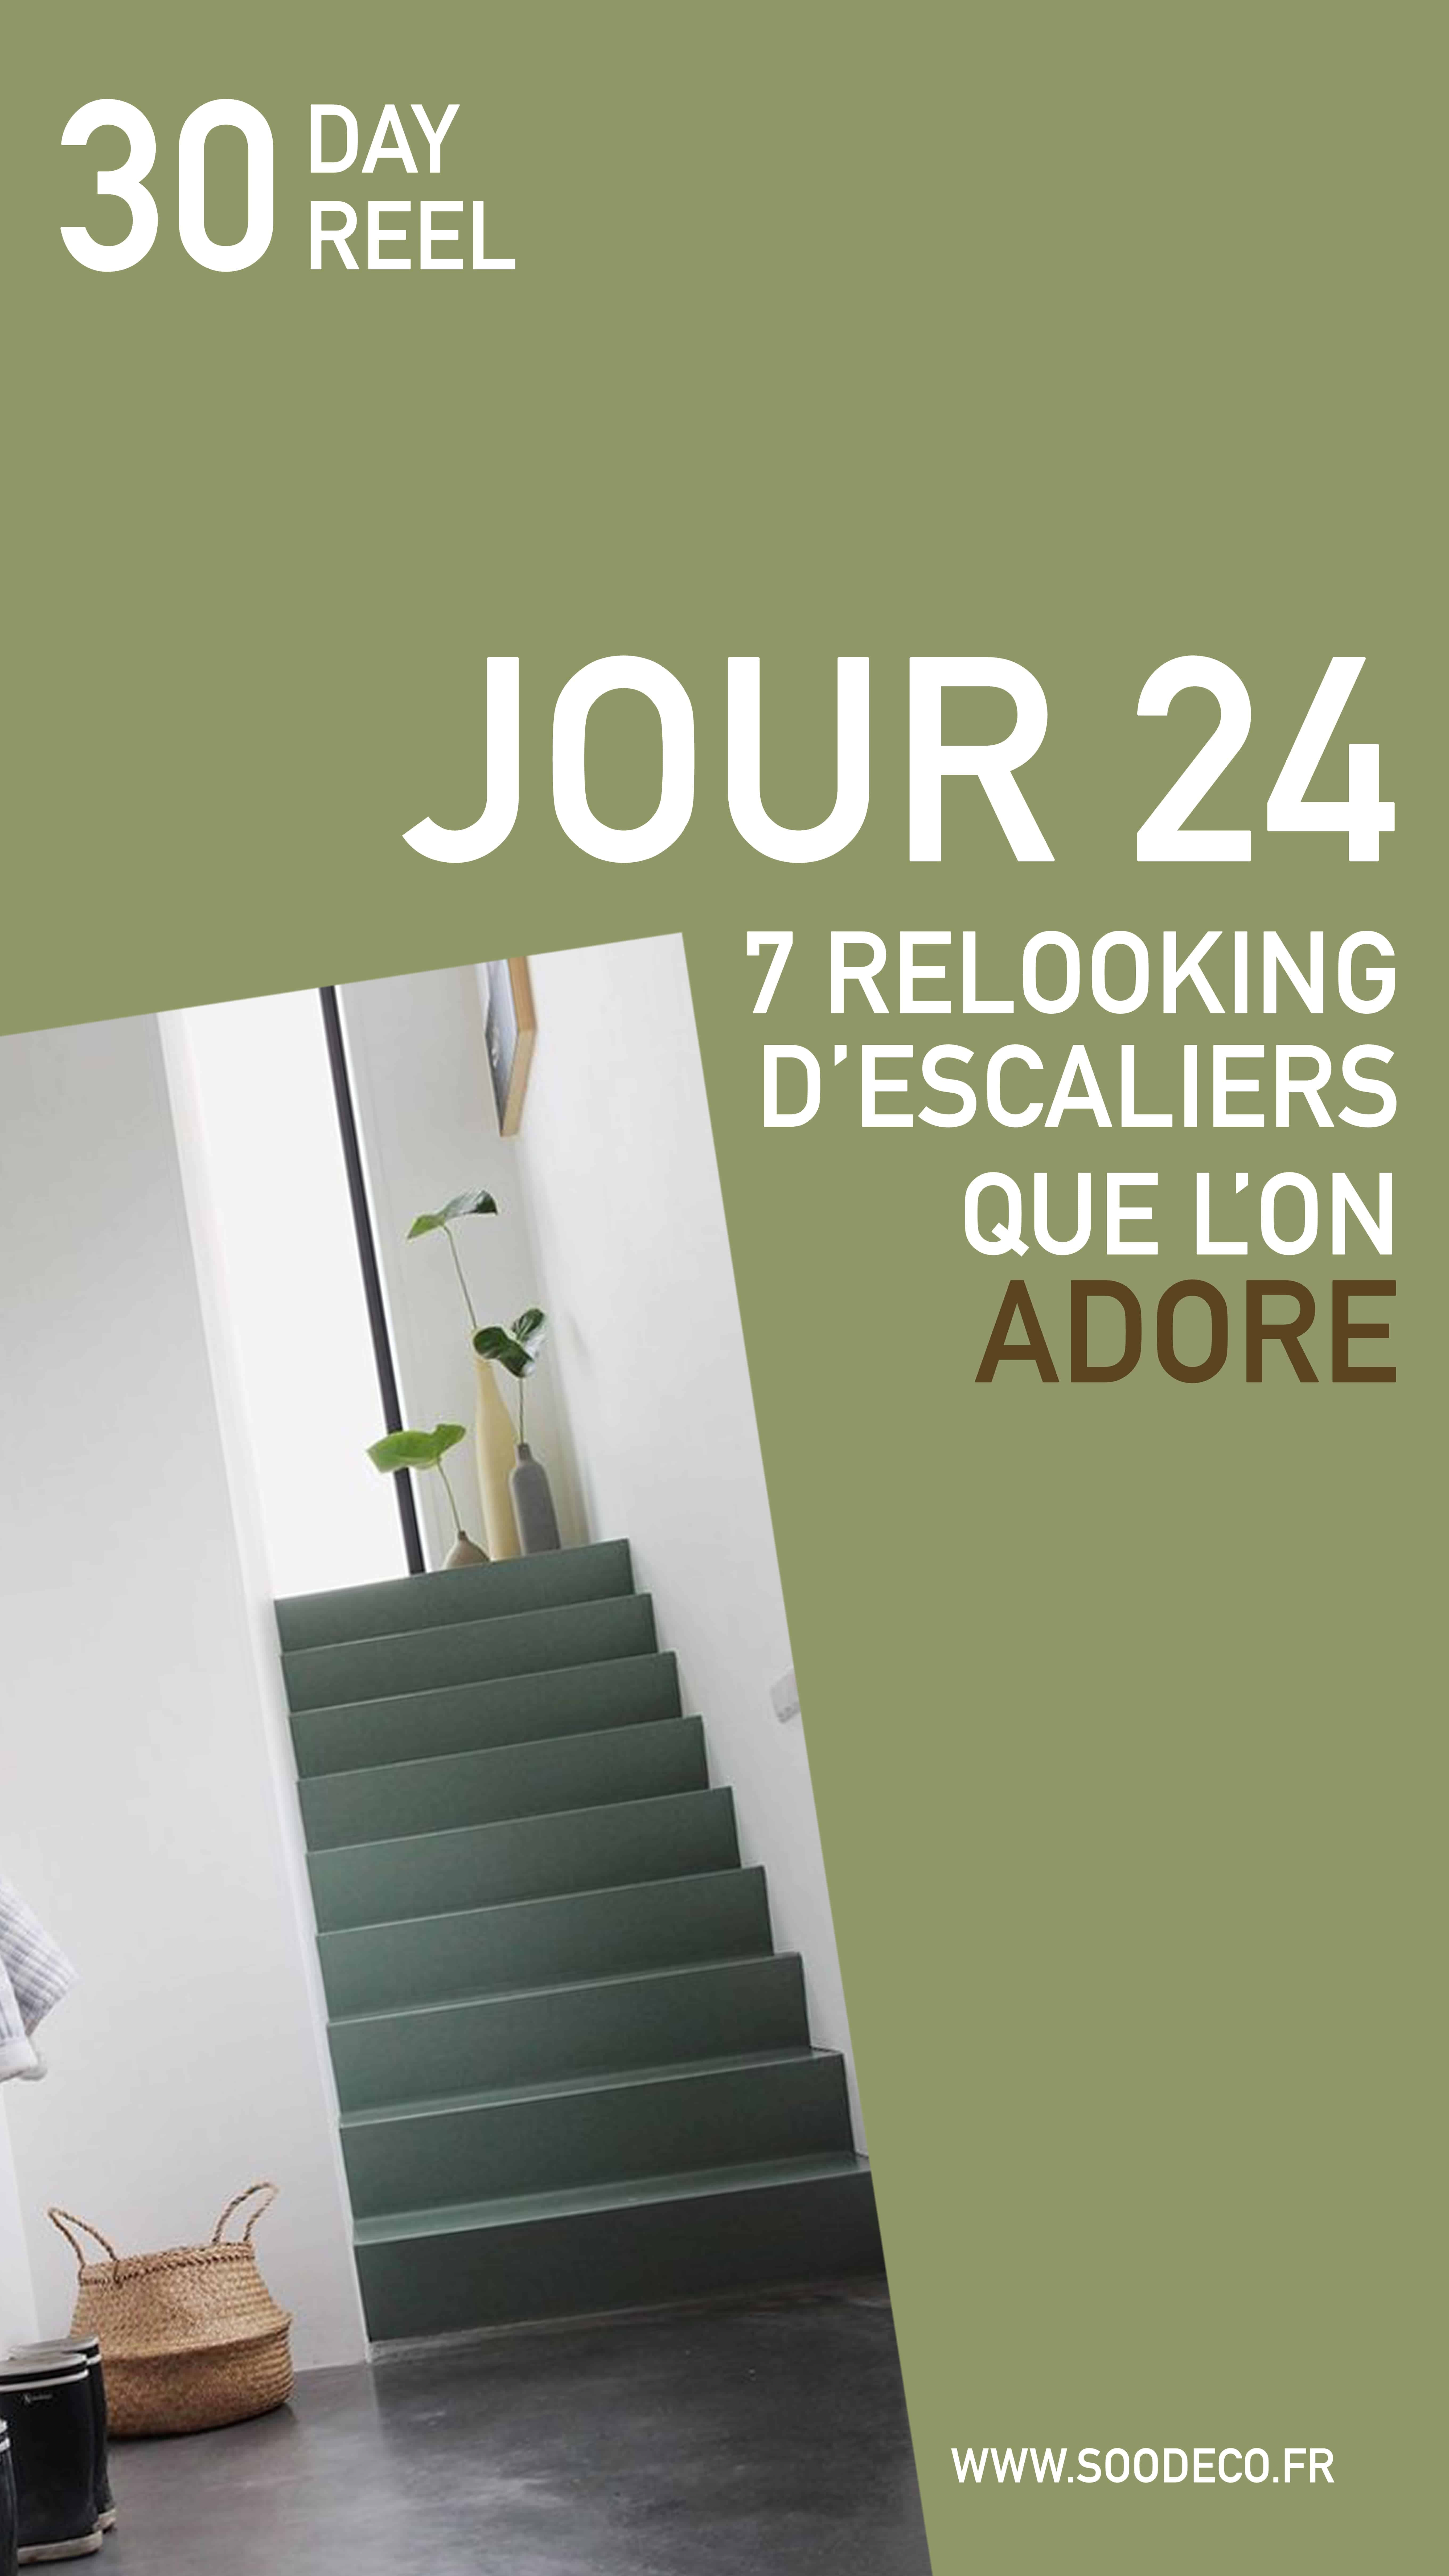 7 Relooking d'escaliers qu'on adore